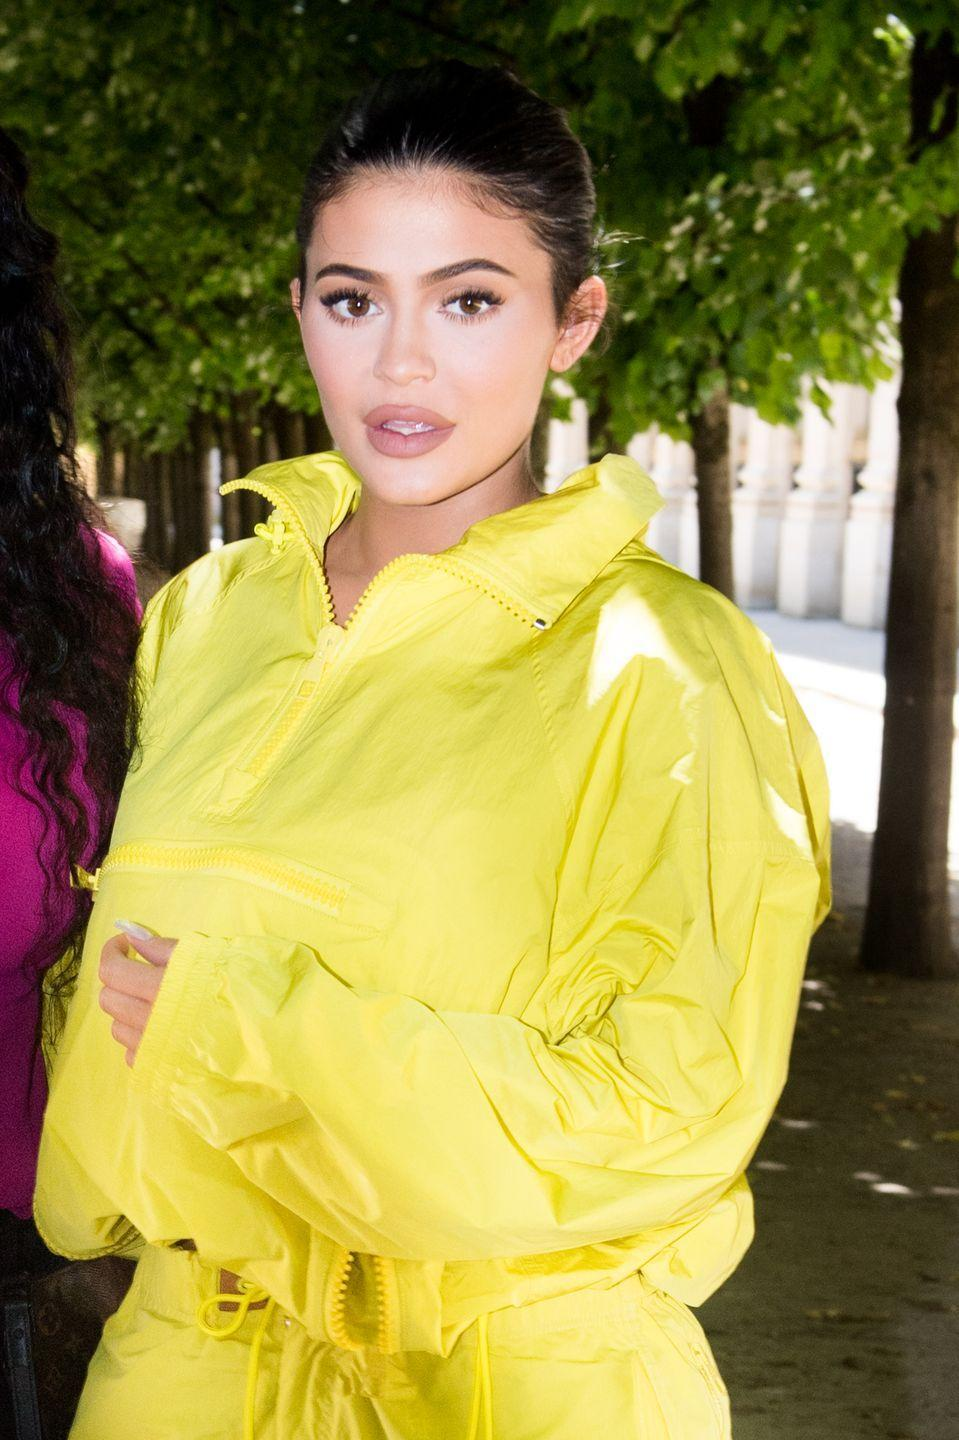 """<p>In 2018, Kylie Jenner <a href=""""https://www.cosmopolitan.com/uk/entertainment/a23330262/kylie-jenners-eating-cereal-without-milk/"""" rel=""""nofollow noopener"""" target=""""_blank"""" data-ylk=""""slk:made headlines"""" class=""""link rapid-noclick-resp"""">made headlines</a> when she revealed that she tried cereal with milk for the first time. The result was...wait for it…""""life-changing."""" The beauty mogul later explained that she had just never felt compelled to add milk to her cereal, because she liked it dry. OK.</p>"""